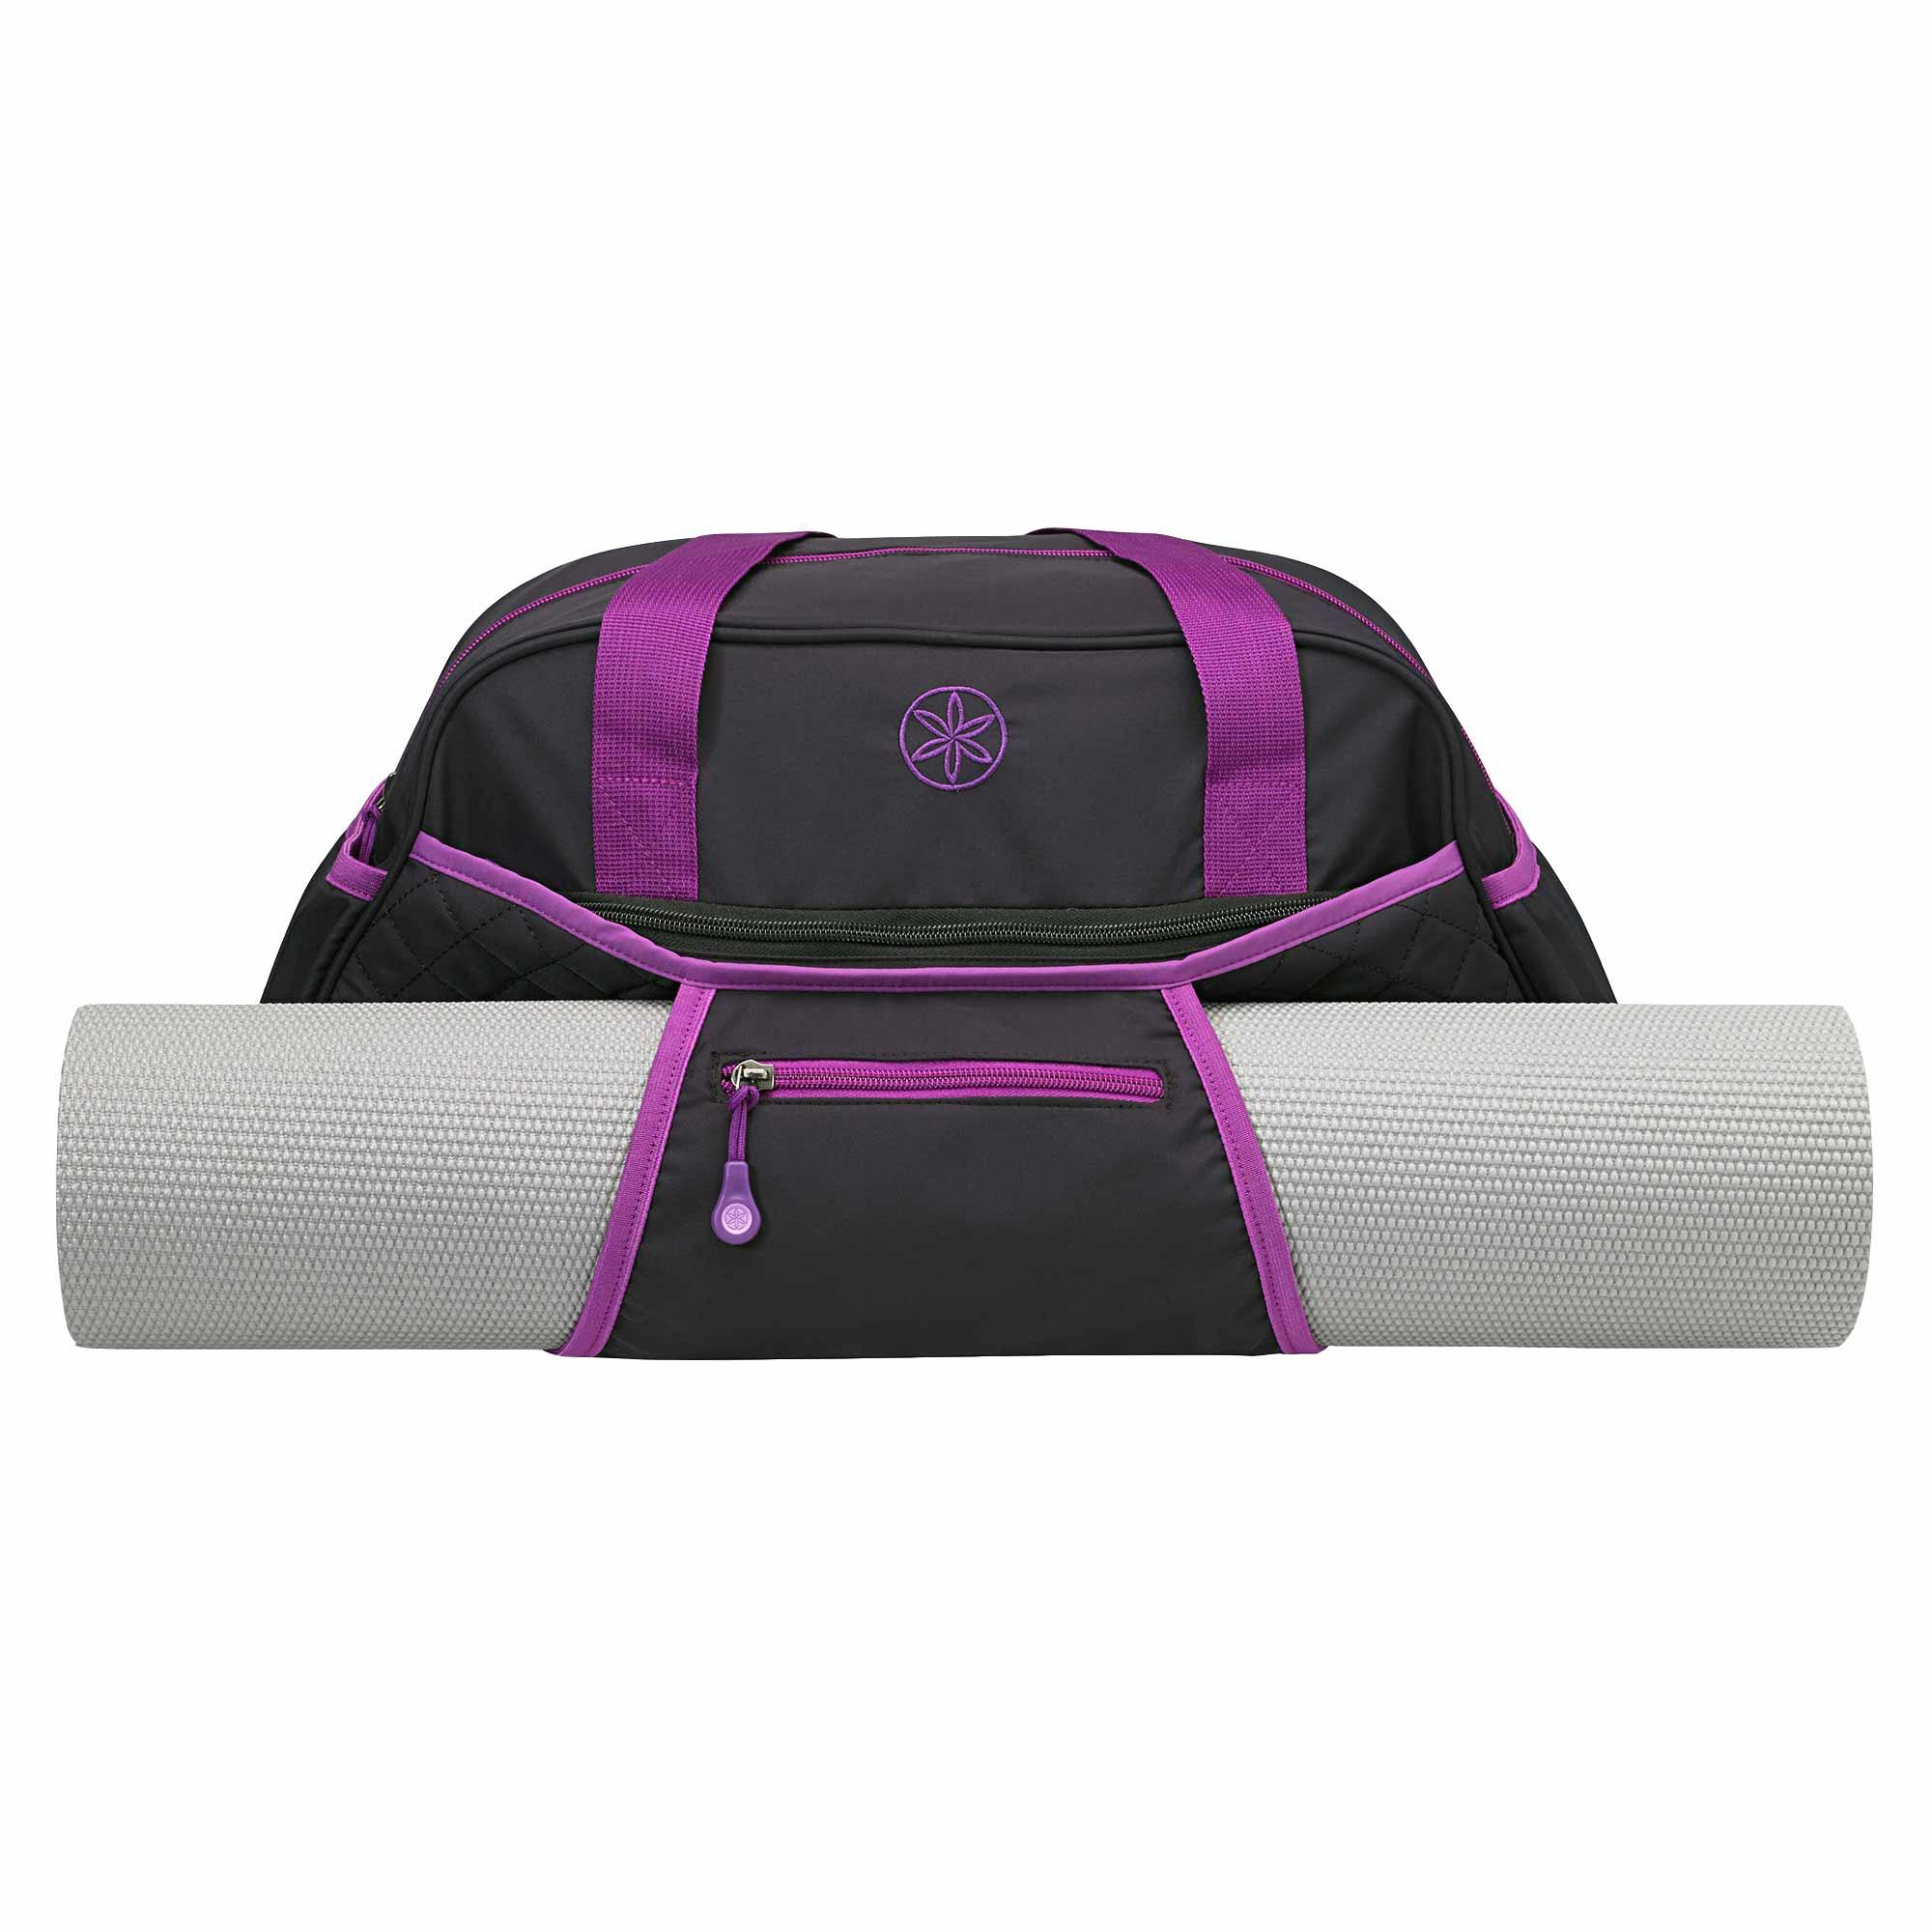 Amazon.com : Gaiam Yoga Duffle Bag, Black : Sports & Outdoors